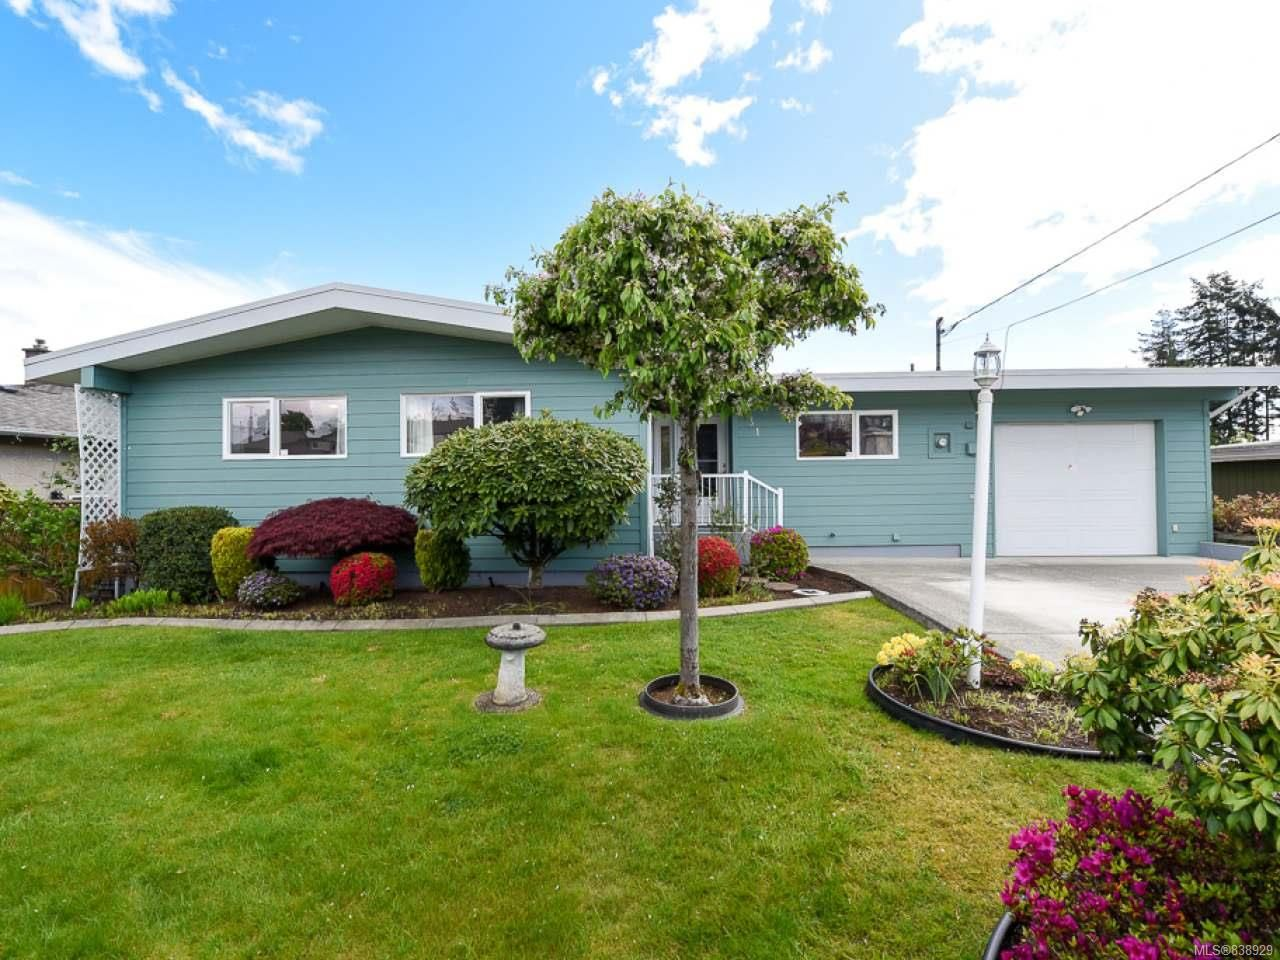 Main Photo: 331 McCarthy St in CAMPBELL RIVER: CR Campbell River Central House for sale (Campbell River)  : MLS®# 838929